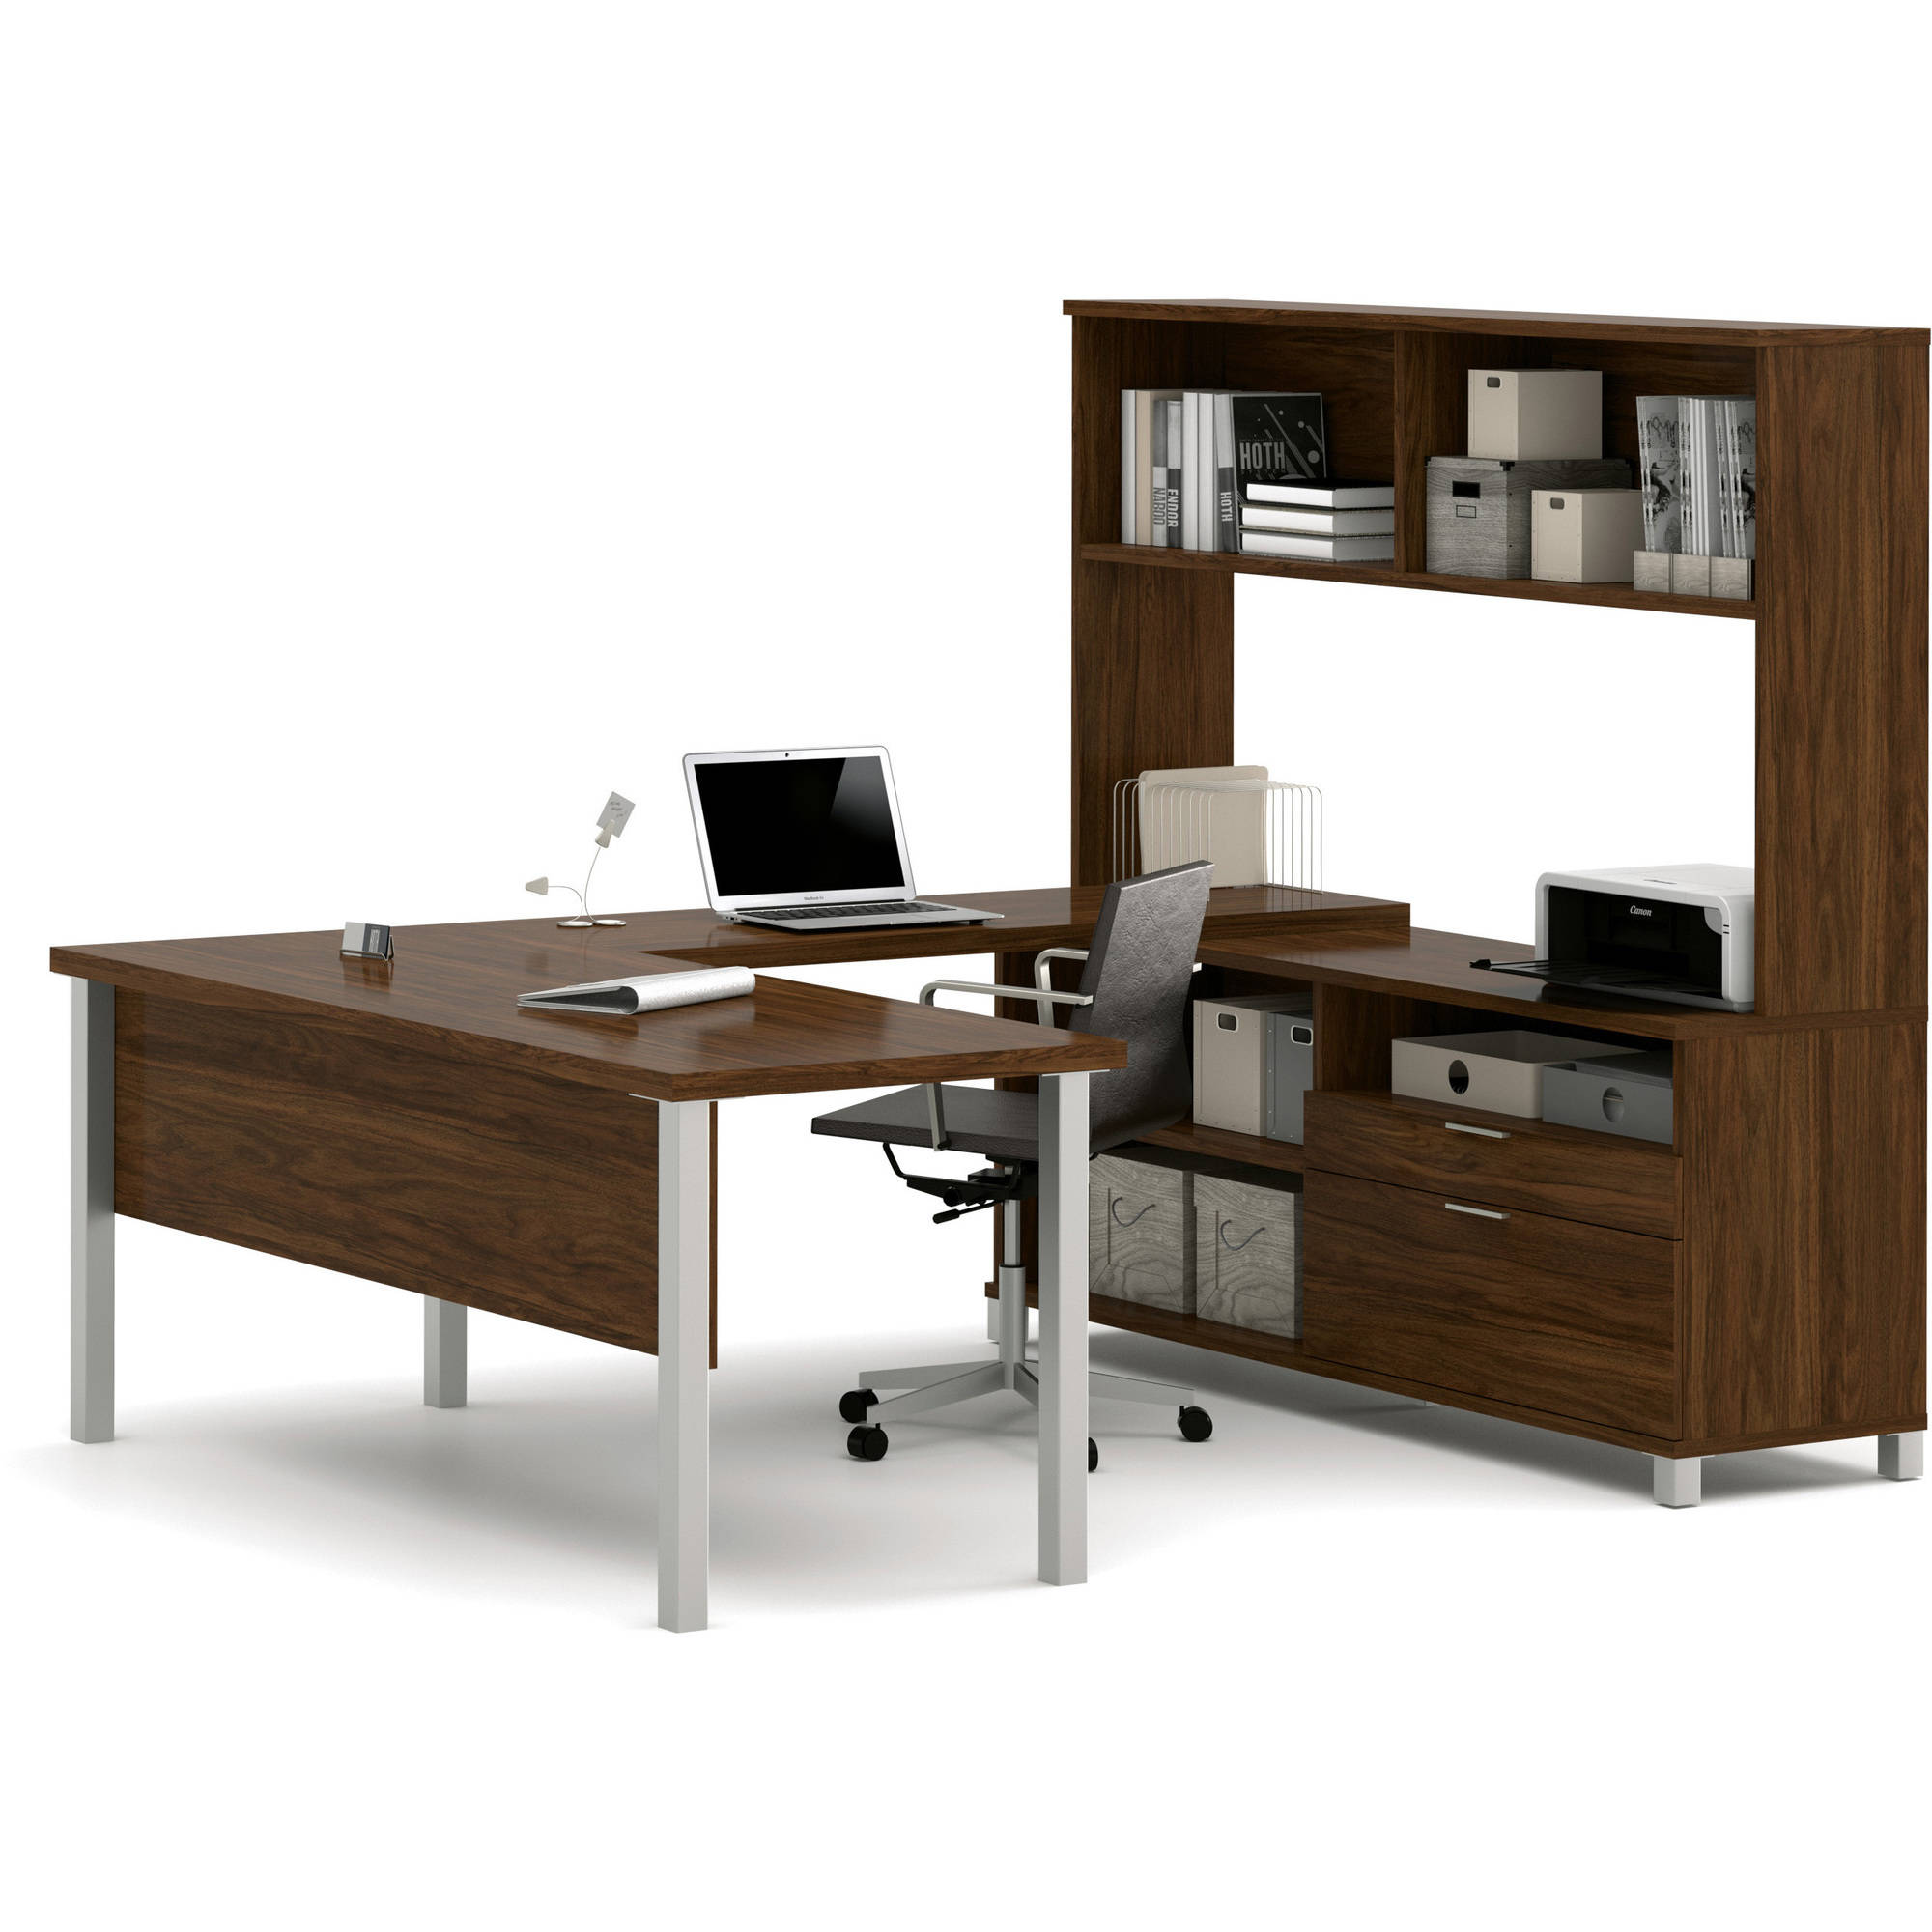 Bestar Pro-Linea U-Desk with Hutch, Oak Barrel